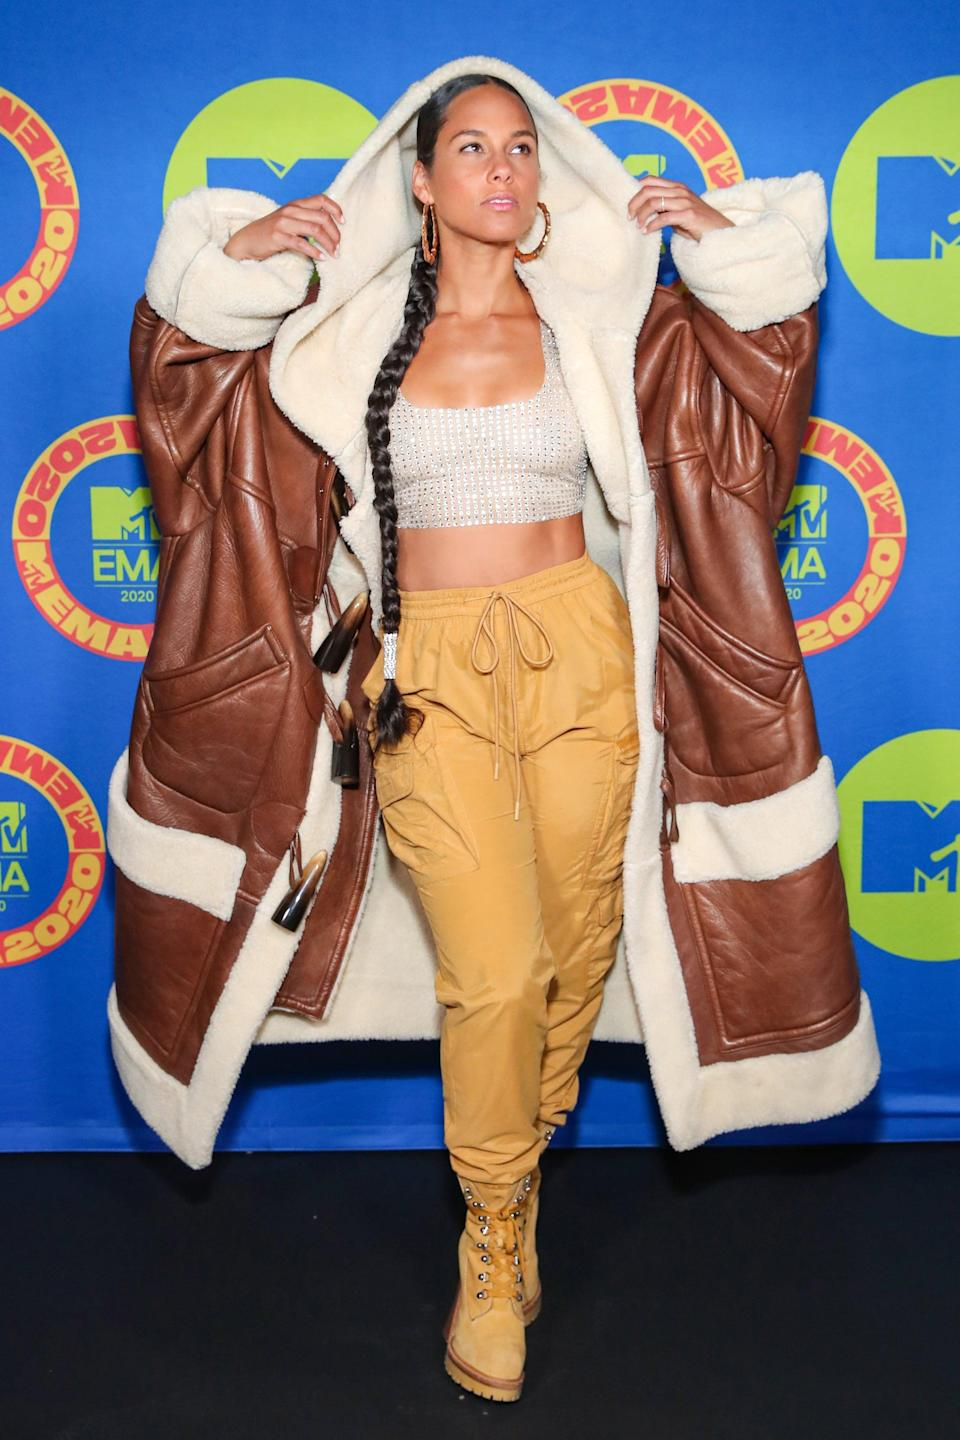 """<p><a class=""""link rapid-noclick-resp"""" href=""""https://www.popsugar.com/Alicia-Keys"""" rel=""""nofollow noopener"""" target=""""_blank"""" data-ylk=""""slk:Alicia Keys"""">Alicia Keys</a> wears a diamanté cropped top with khaki high-waisted cargo trousers, matching boots, and an oversize brown leather jacket with a white shearling trim.</p>"""